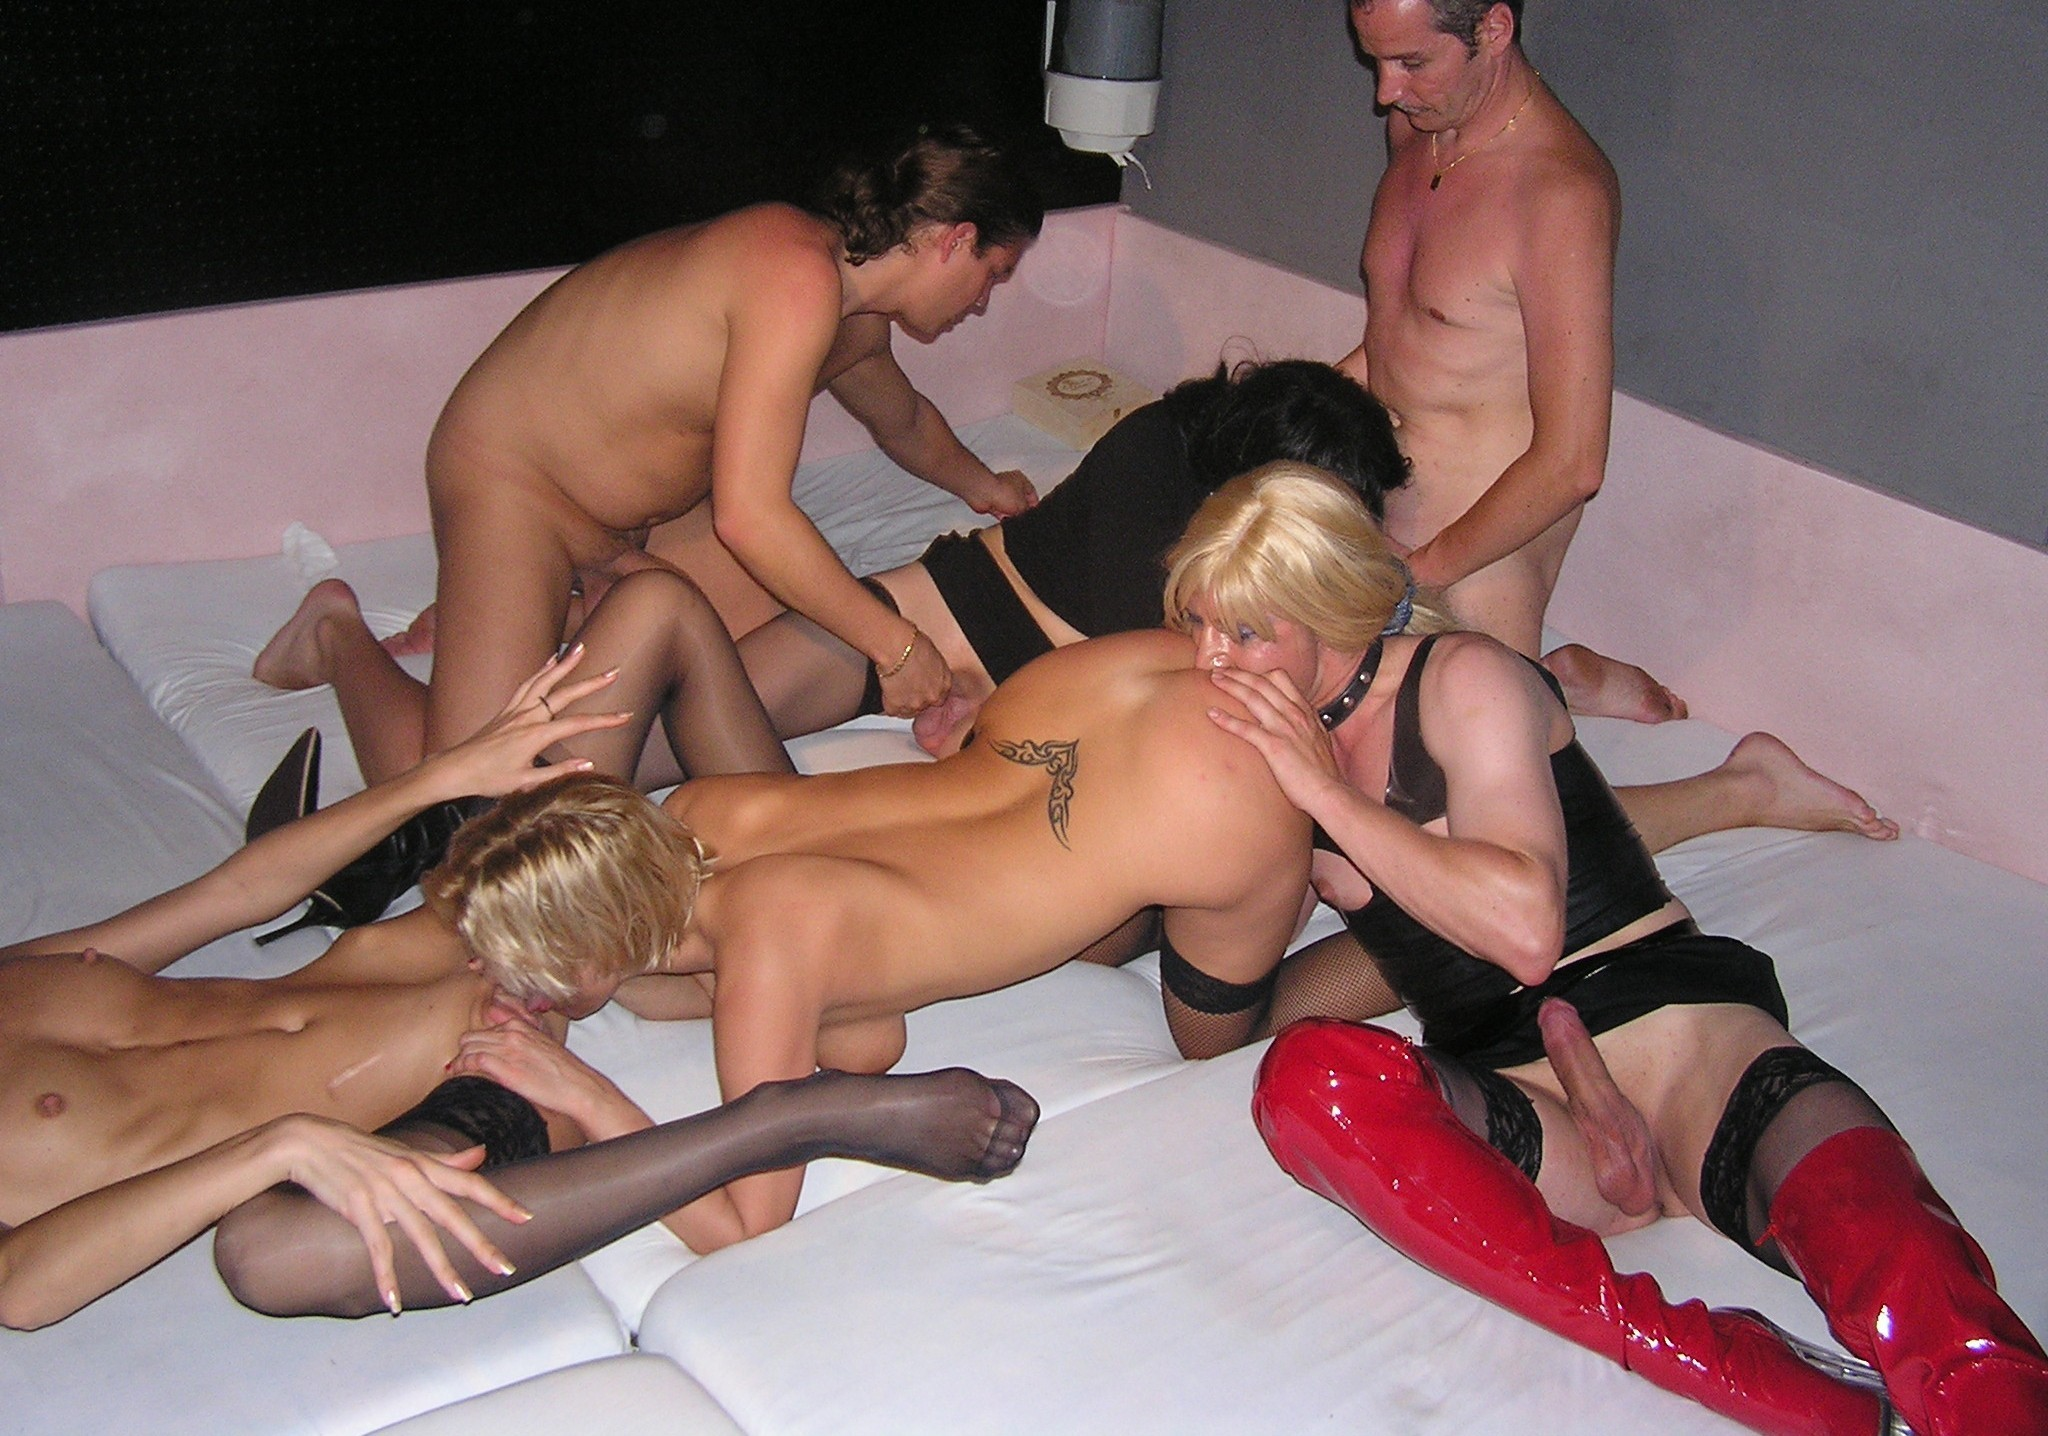 Swinger are having a wild sex party